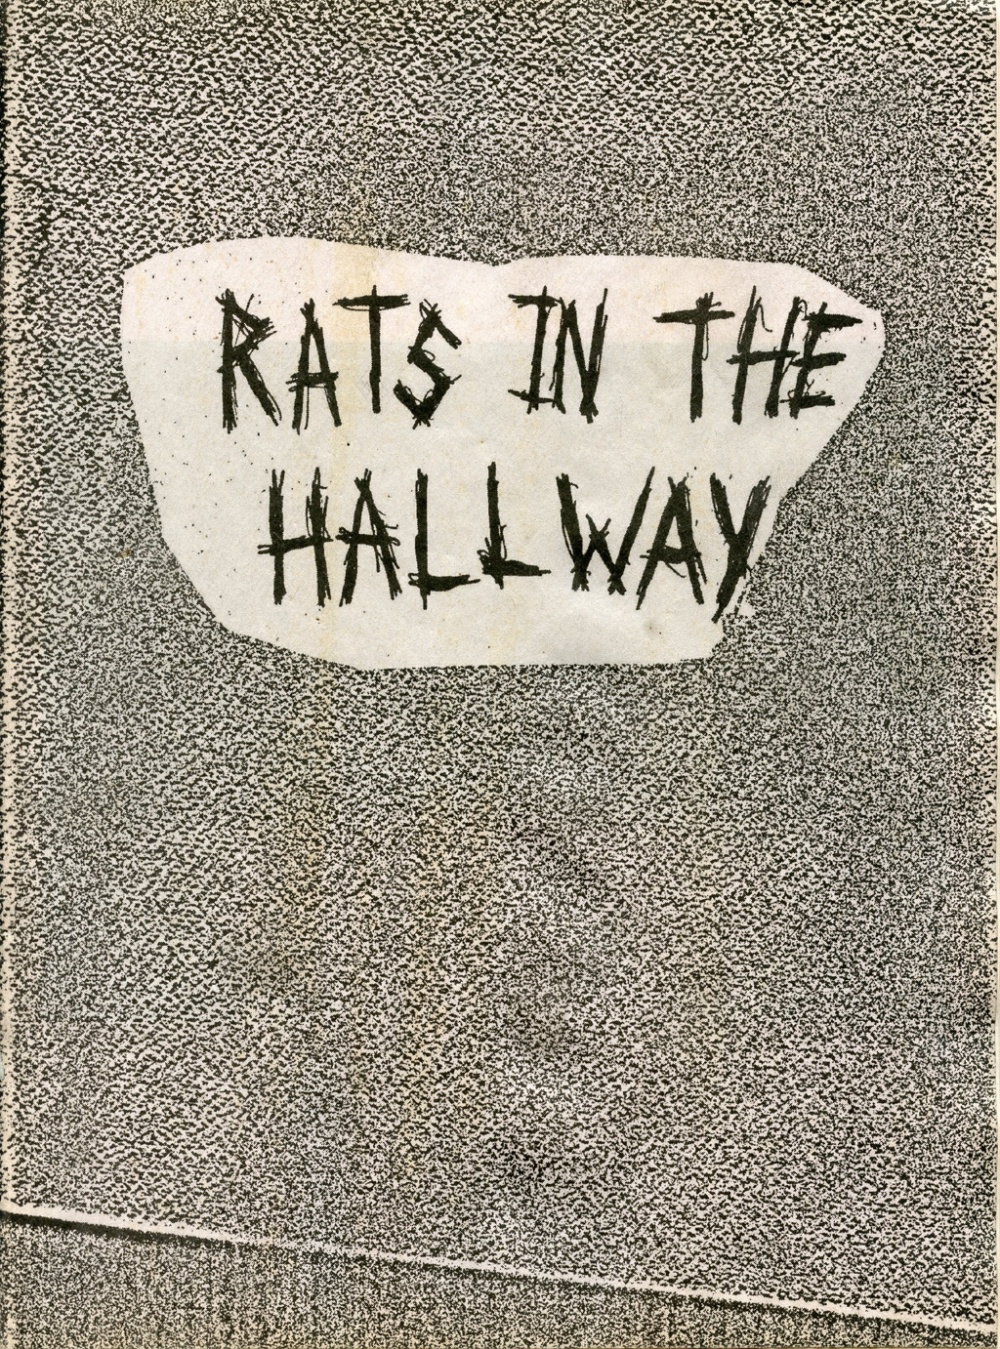 Foerster 4, Rats in the Hallway alt